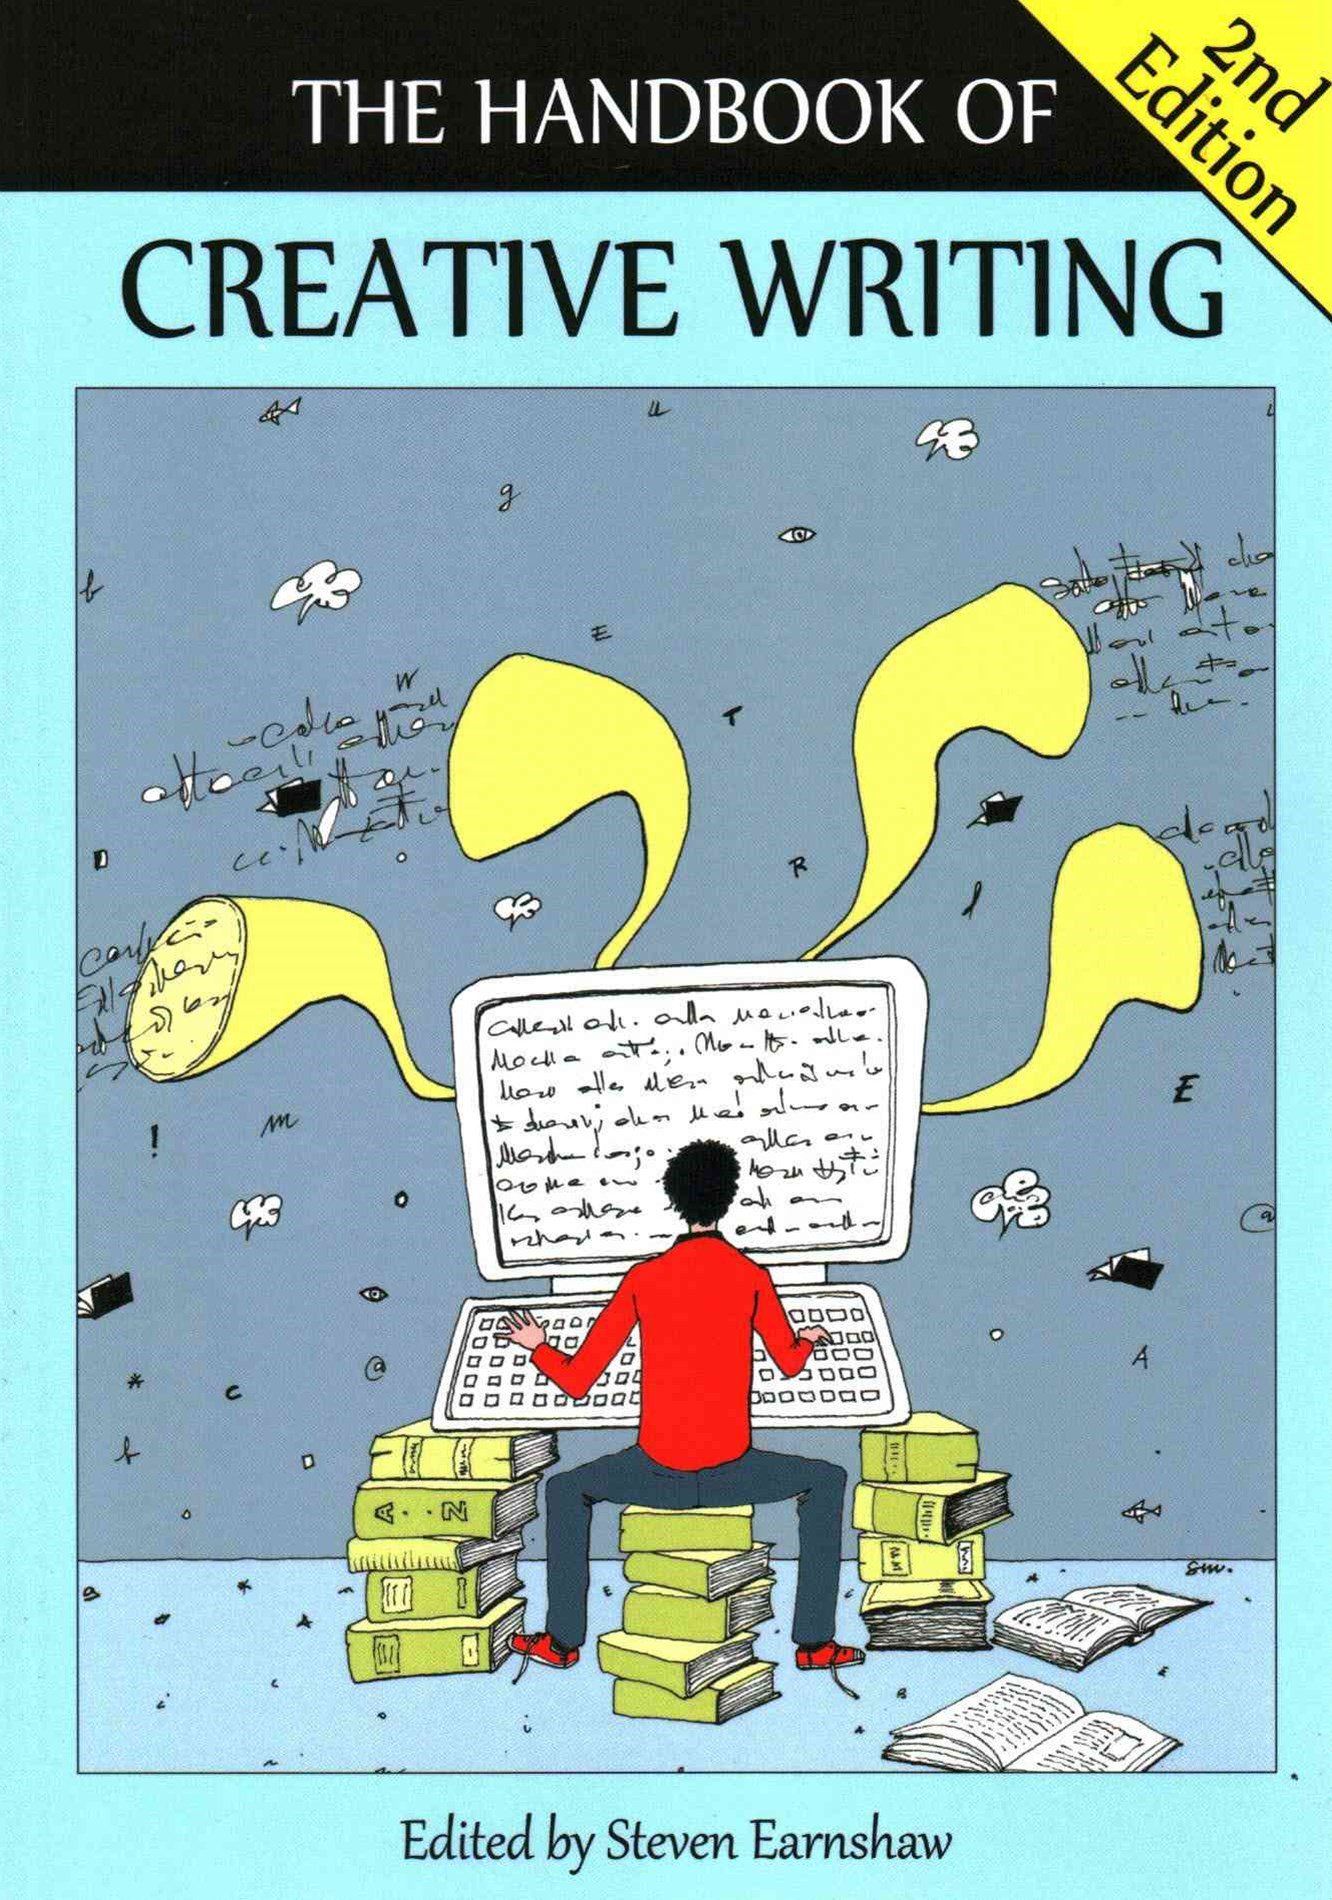 The Handbook of Creative Writing